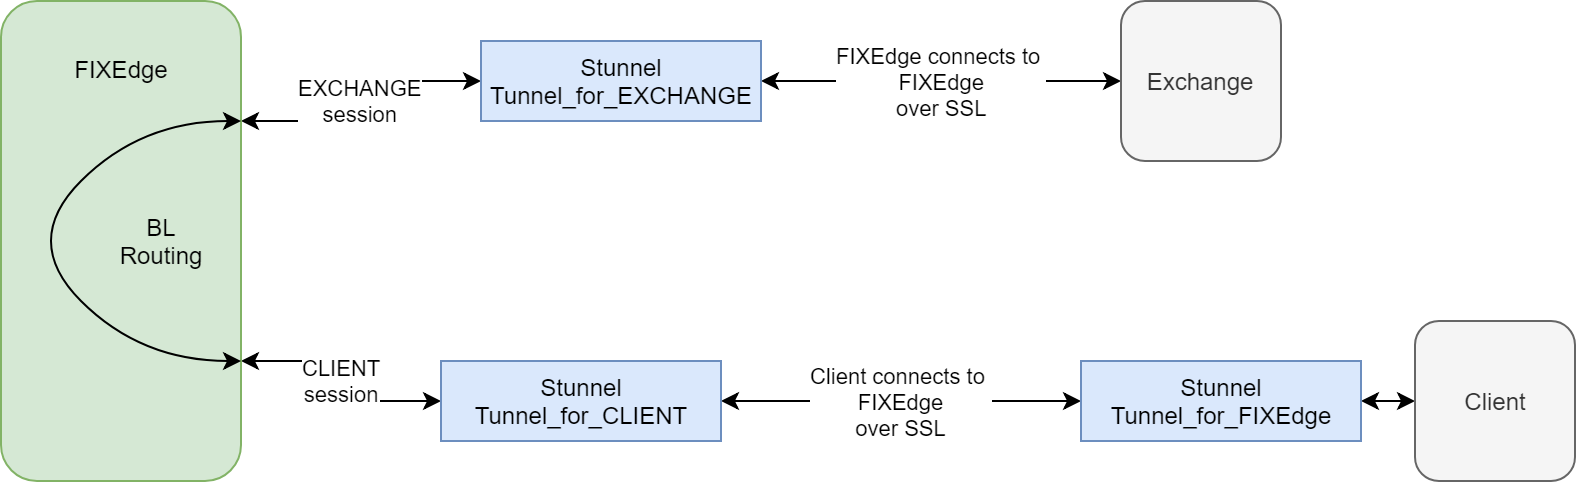 Confluence Mobile Fix Products Knowledge Base